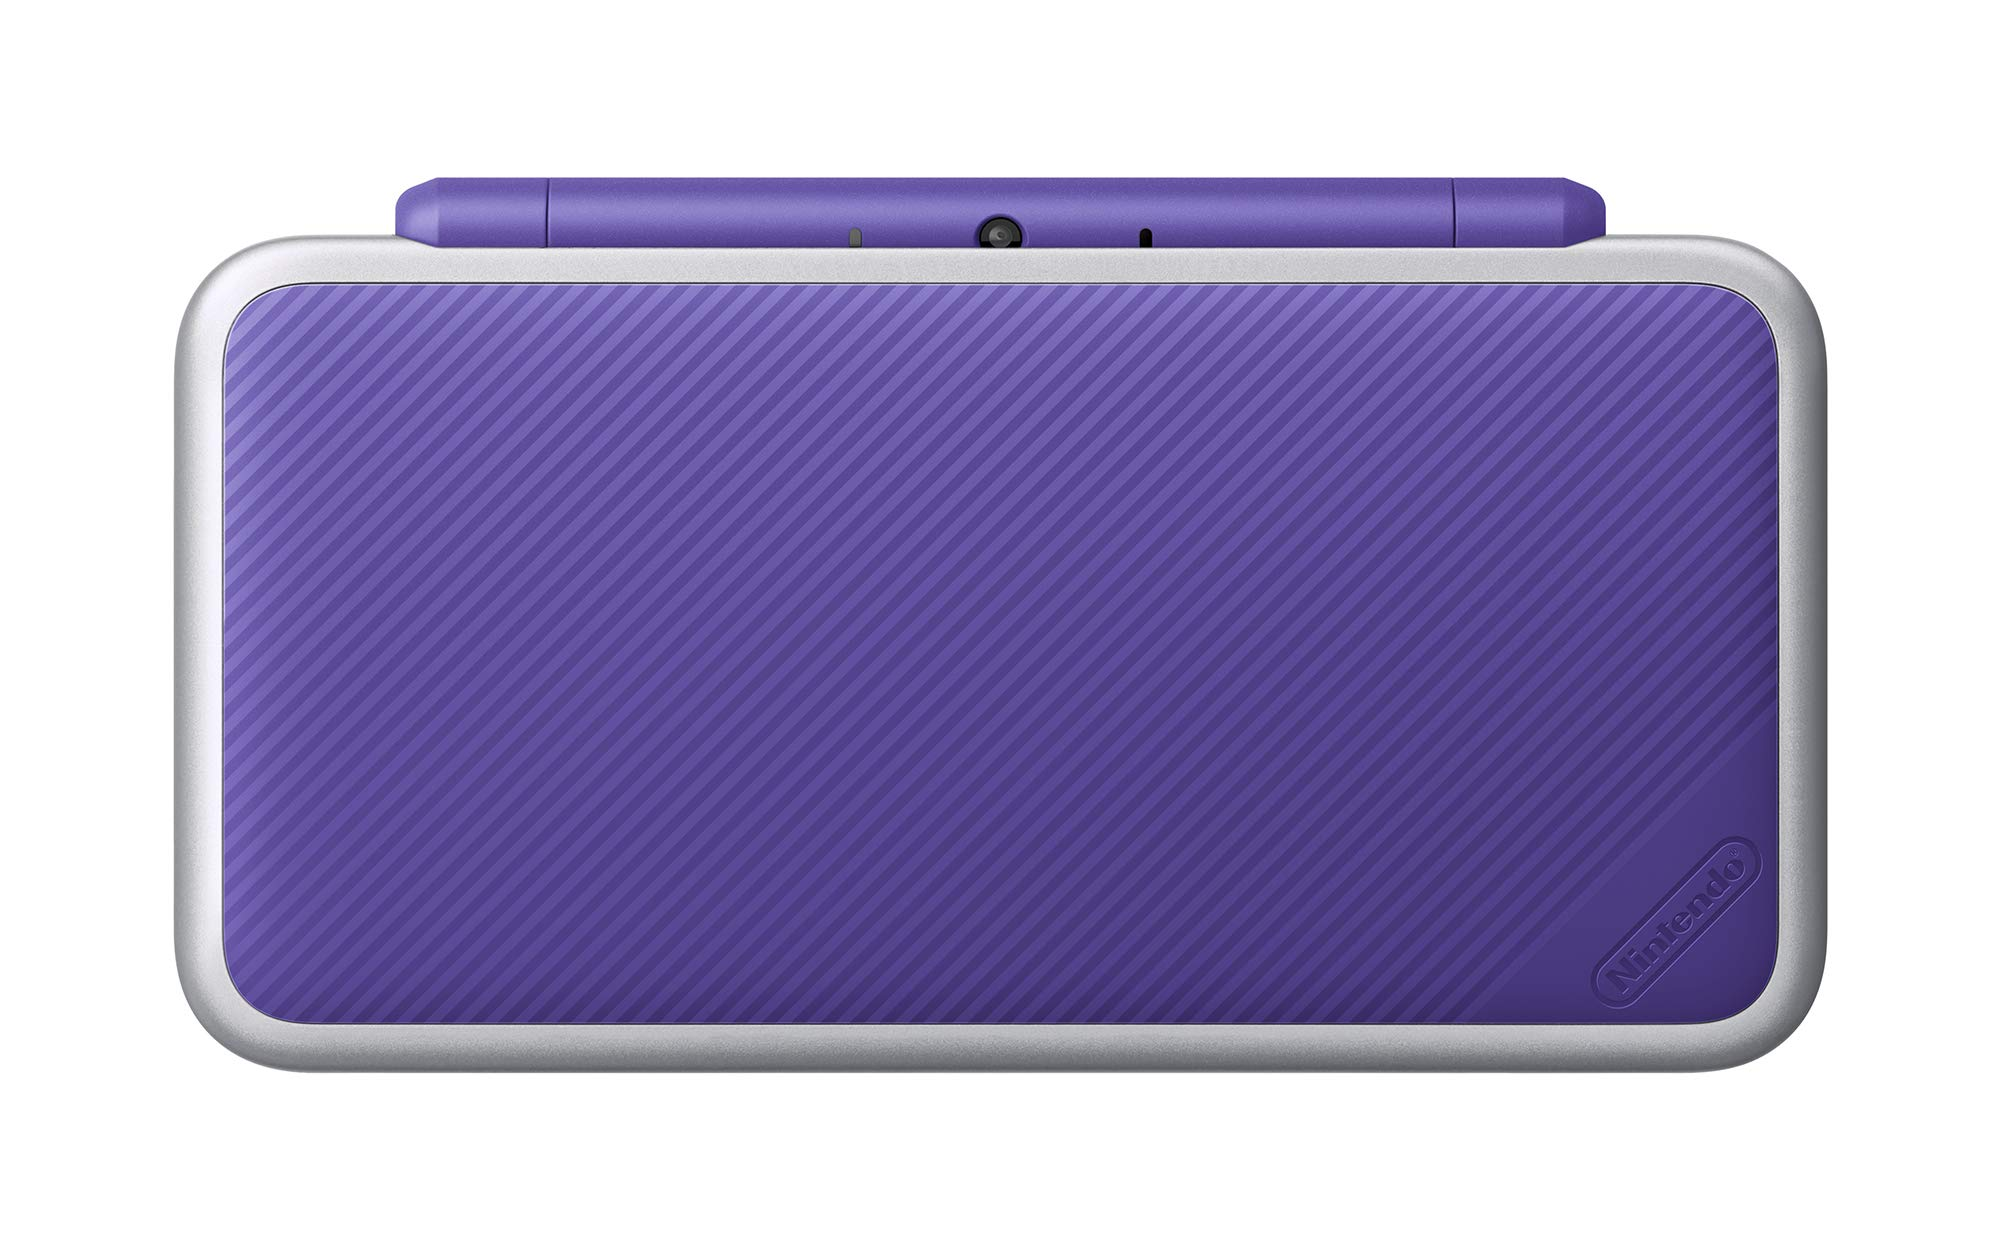 New Nintendo 2DS XL - Purple + Silver With Mario Kart 7 Pre-installed - Nintendo 2DS by Nintendo (Image #6)